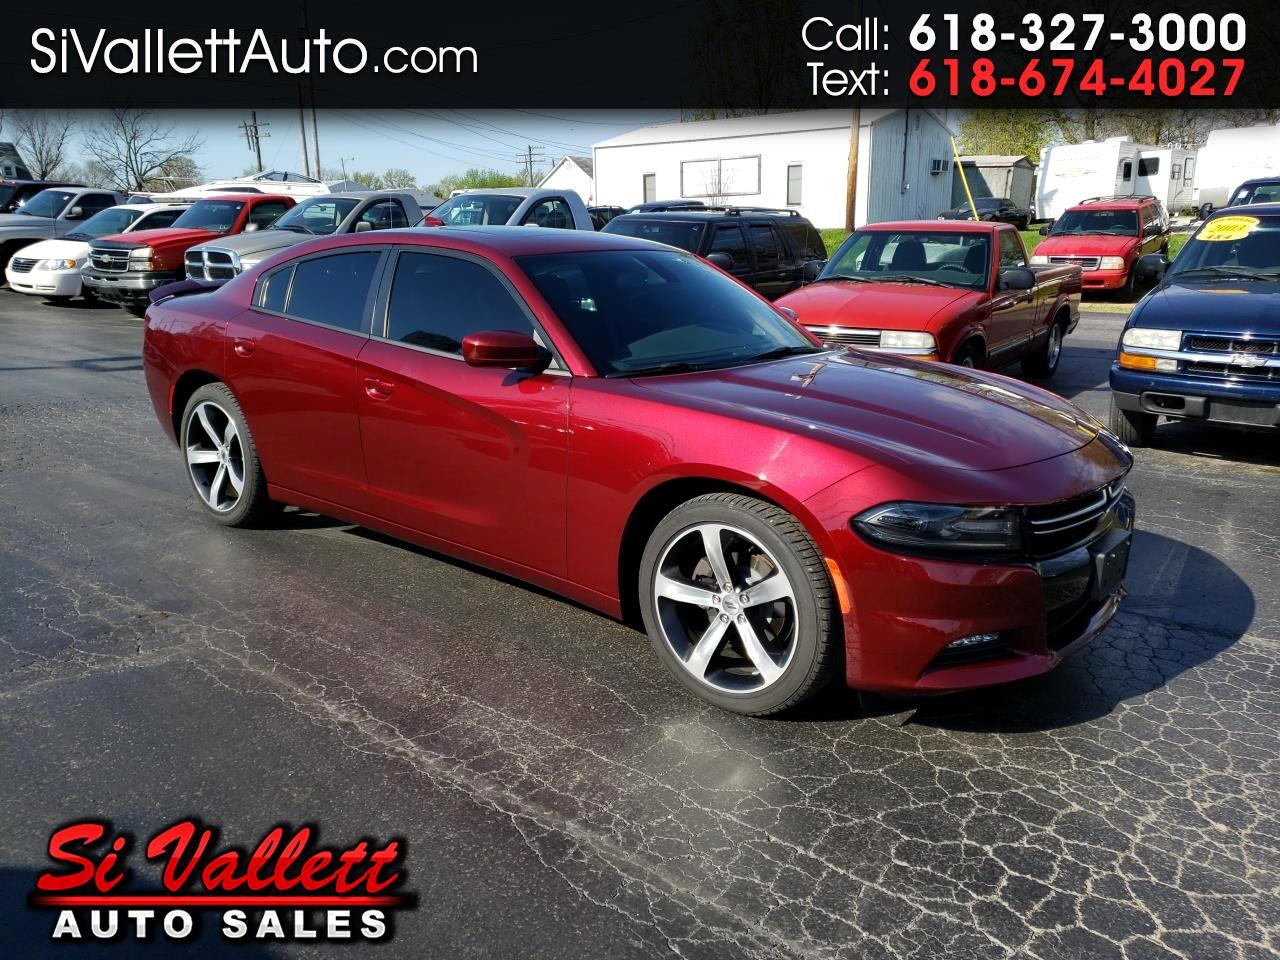 Spirit Auto Sales >> Used Cars For Sale St Louis Mo 63101 Si Vallett Auto Sales